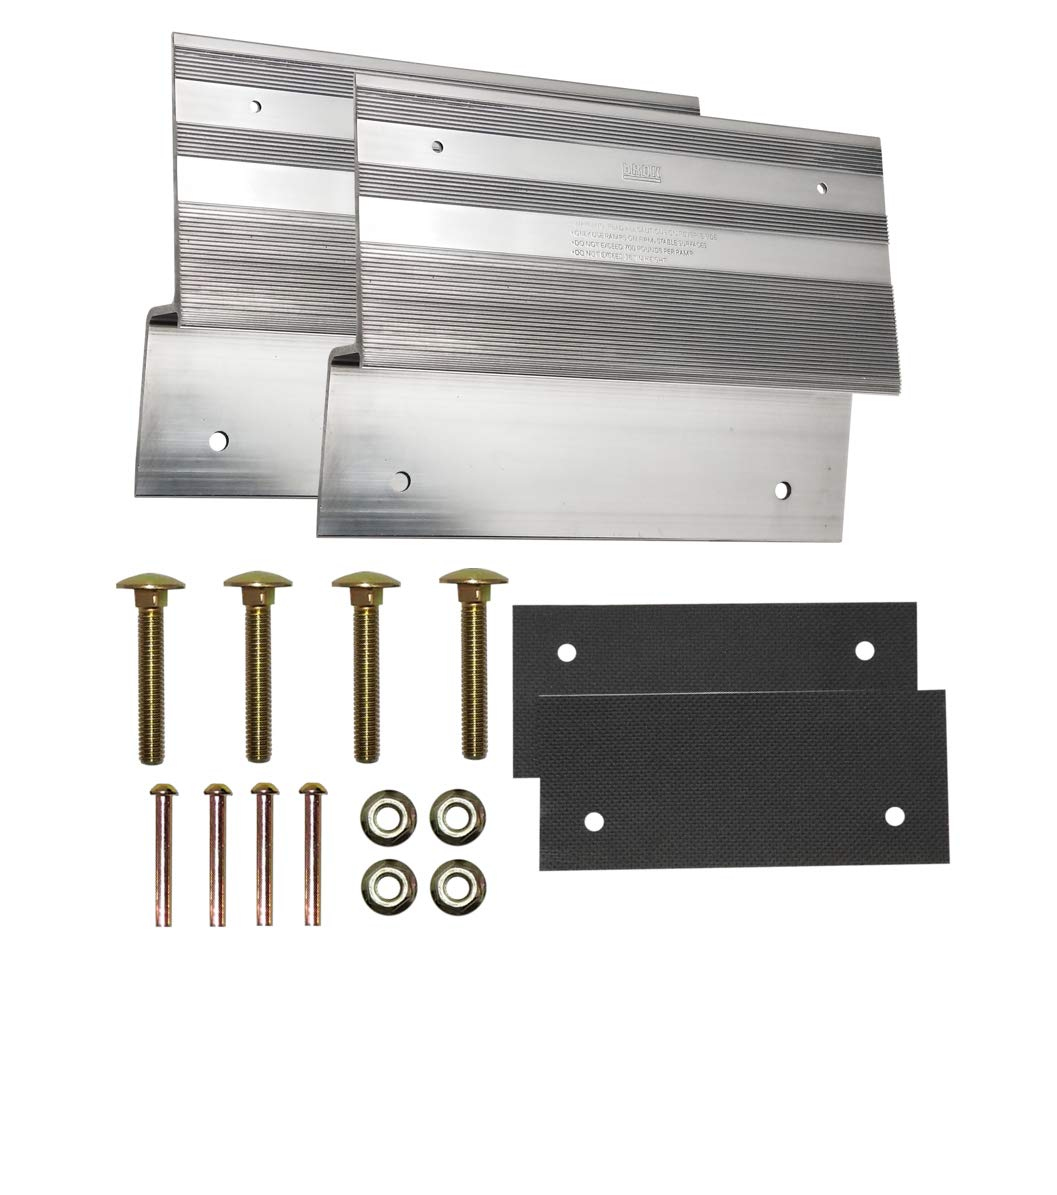 bROK 12'' Aluminum Ramp Kit for 2'' x 12'' Planks with Full Width scratchproof Pads. Create Universal Wood Plank ramps to Load and unload Lawn Tractors, ATVs, dolleys, and wheelbarrows